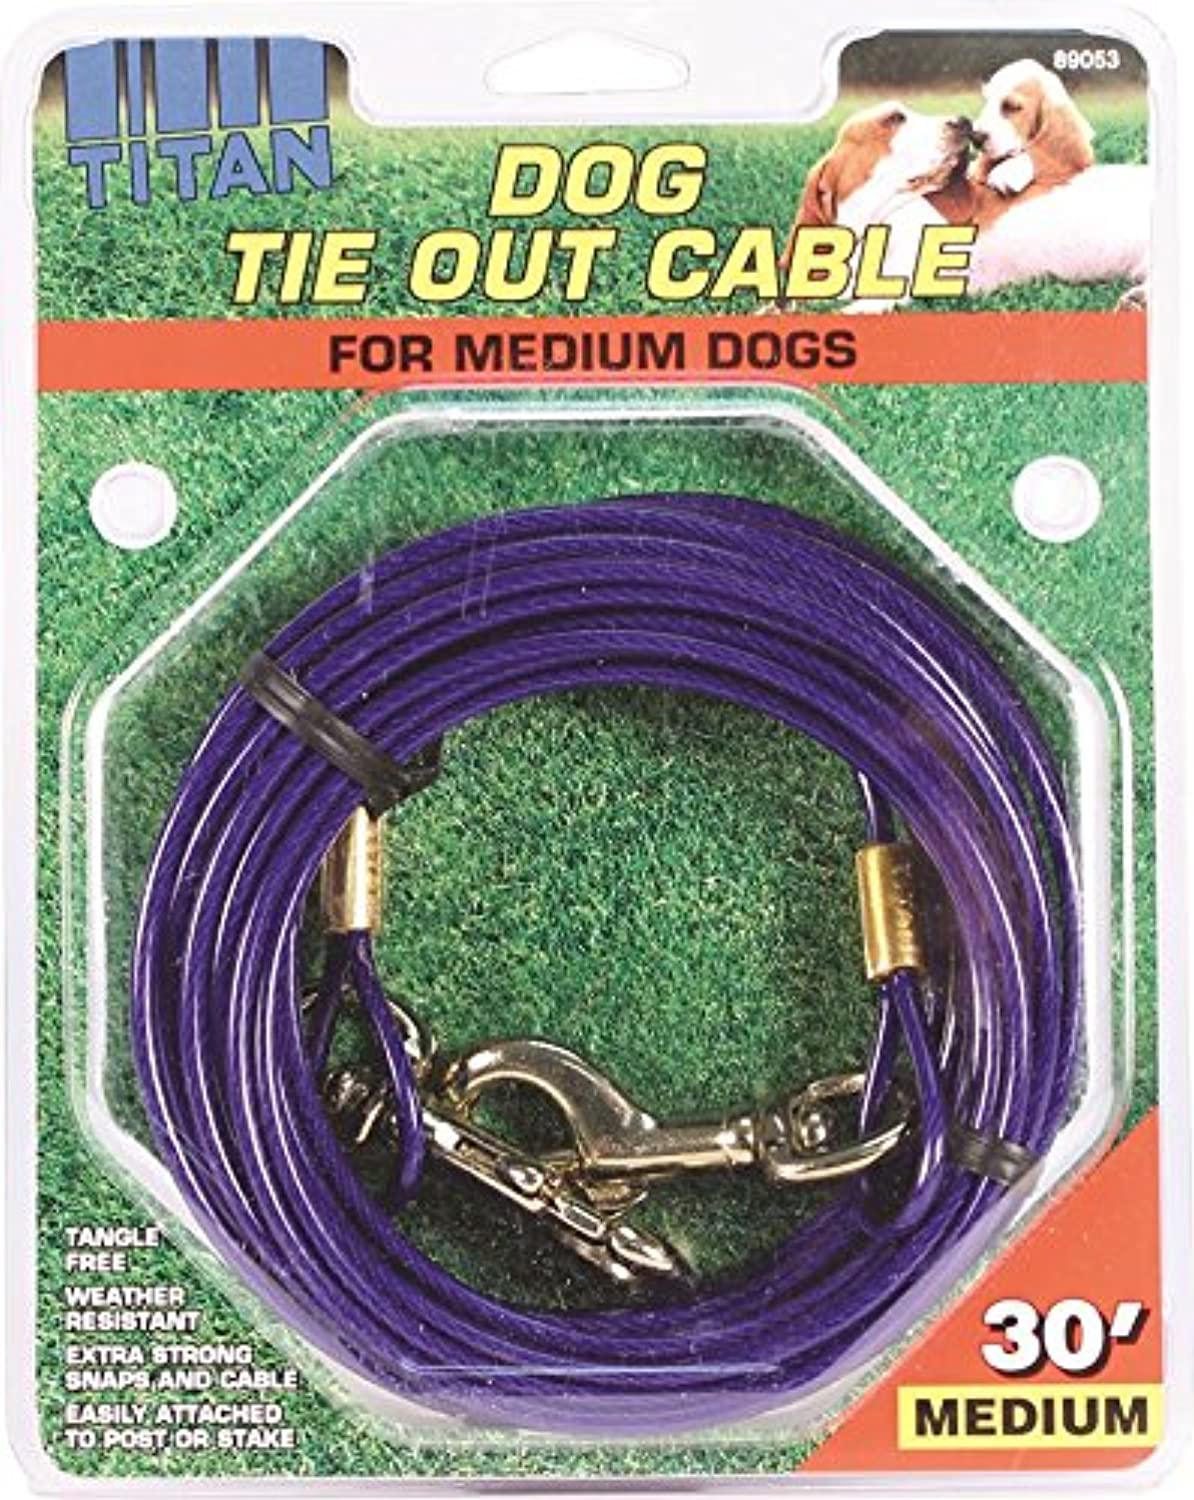 Coastal Pet Products DCP89053 Titan Dog Medium Tie Out Cable, 30Feet